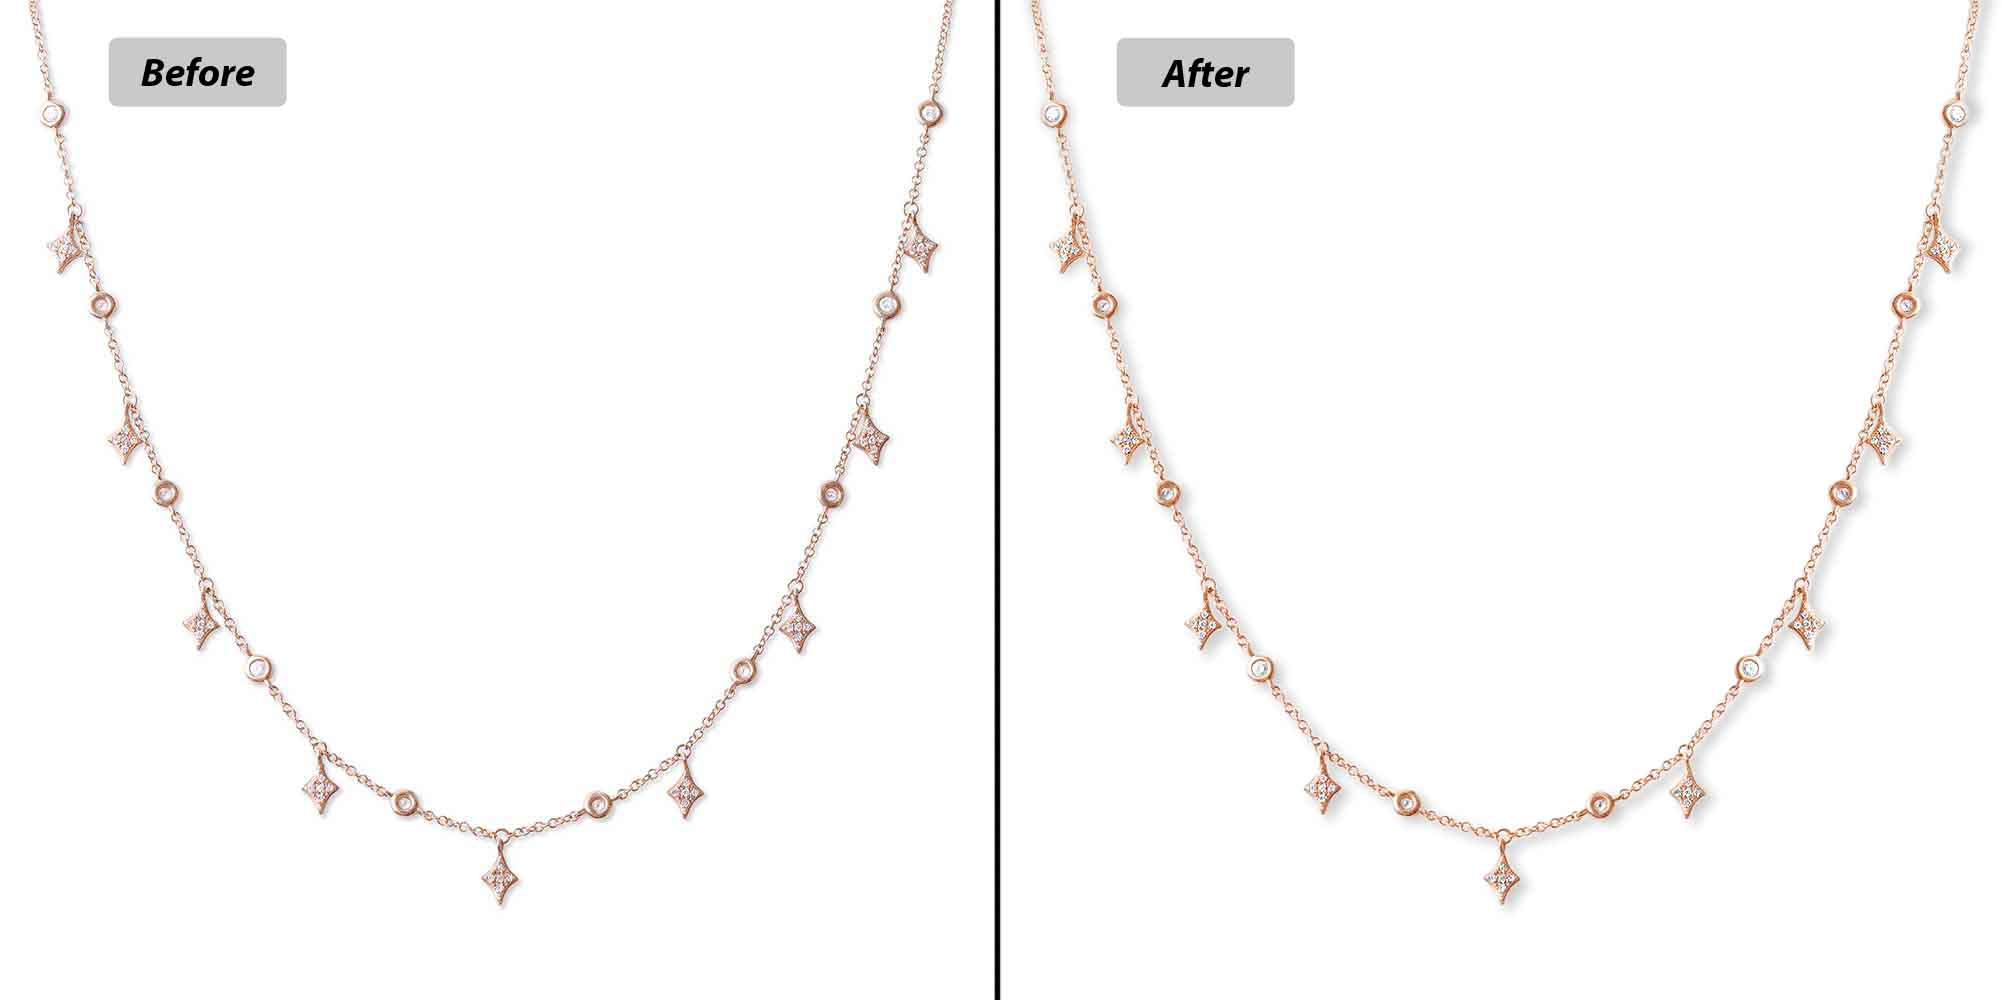 Clipping Charm_Jewellery retouch 0917